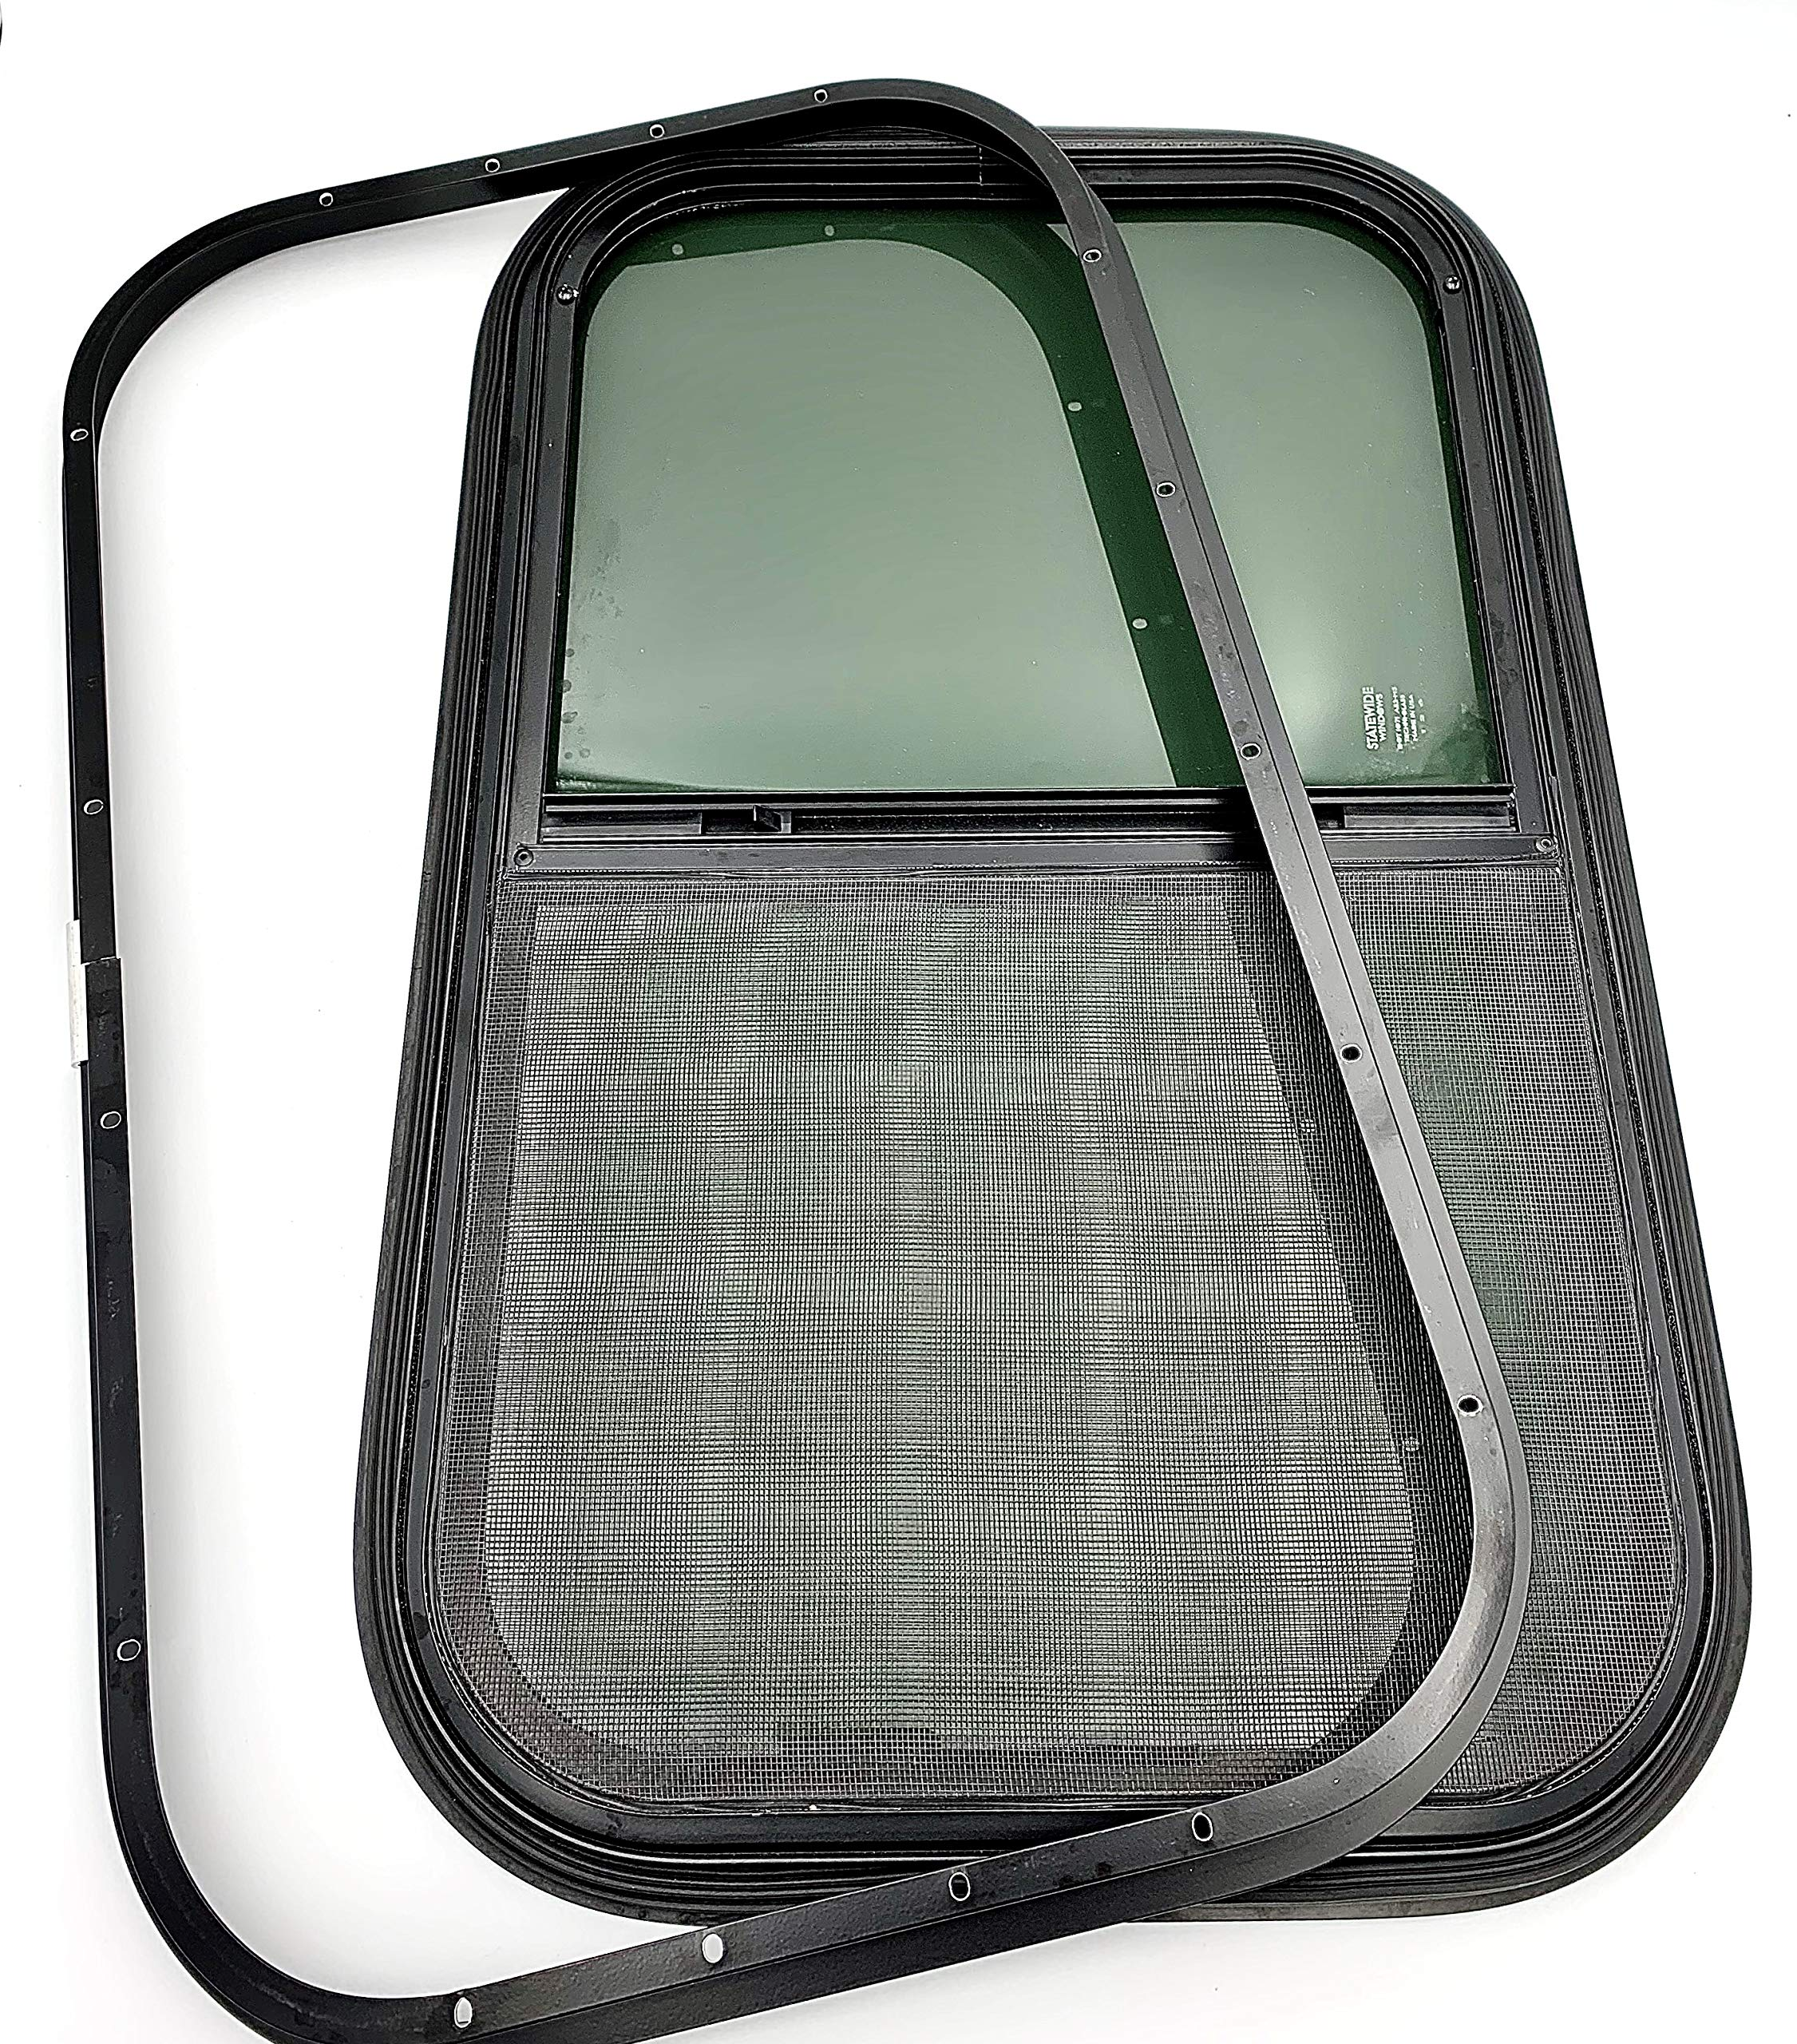 Vintage Technologies RV Teardrop Cargo 1 21 Wide x 14 Tall for 1-1//2 Wall Thickness Horse Trailer Camper Window